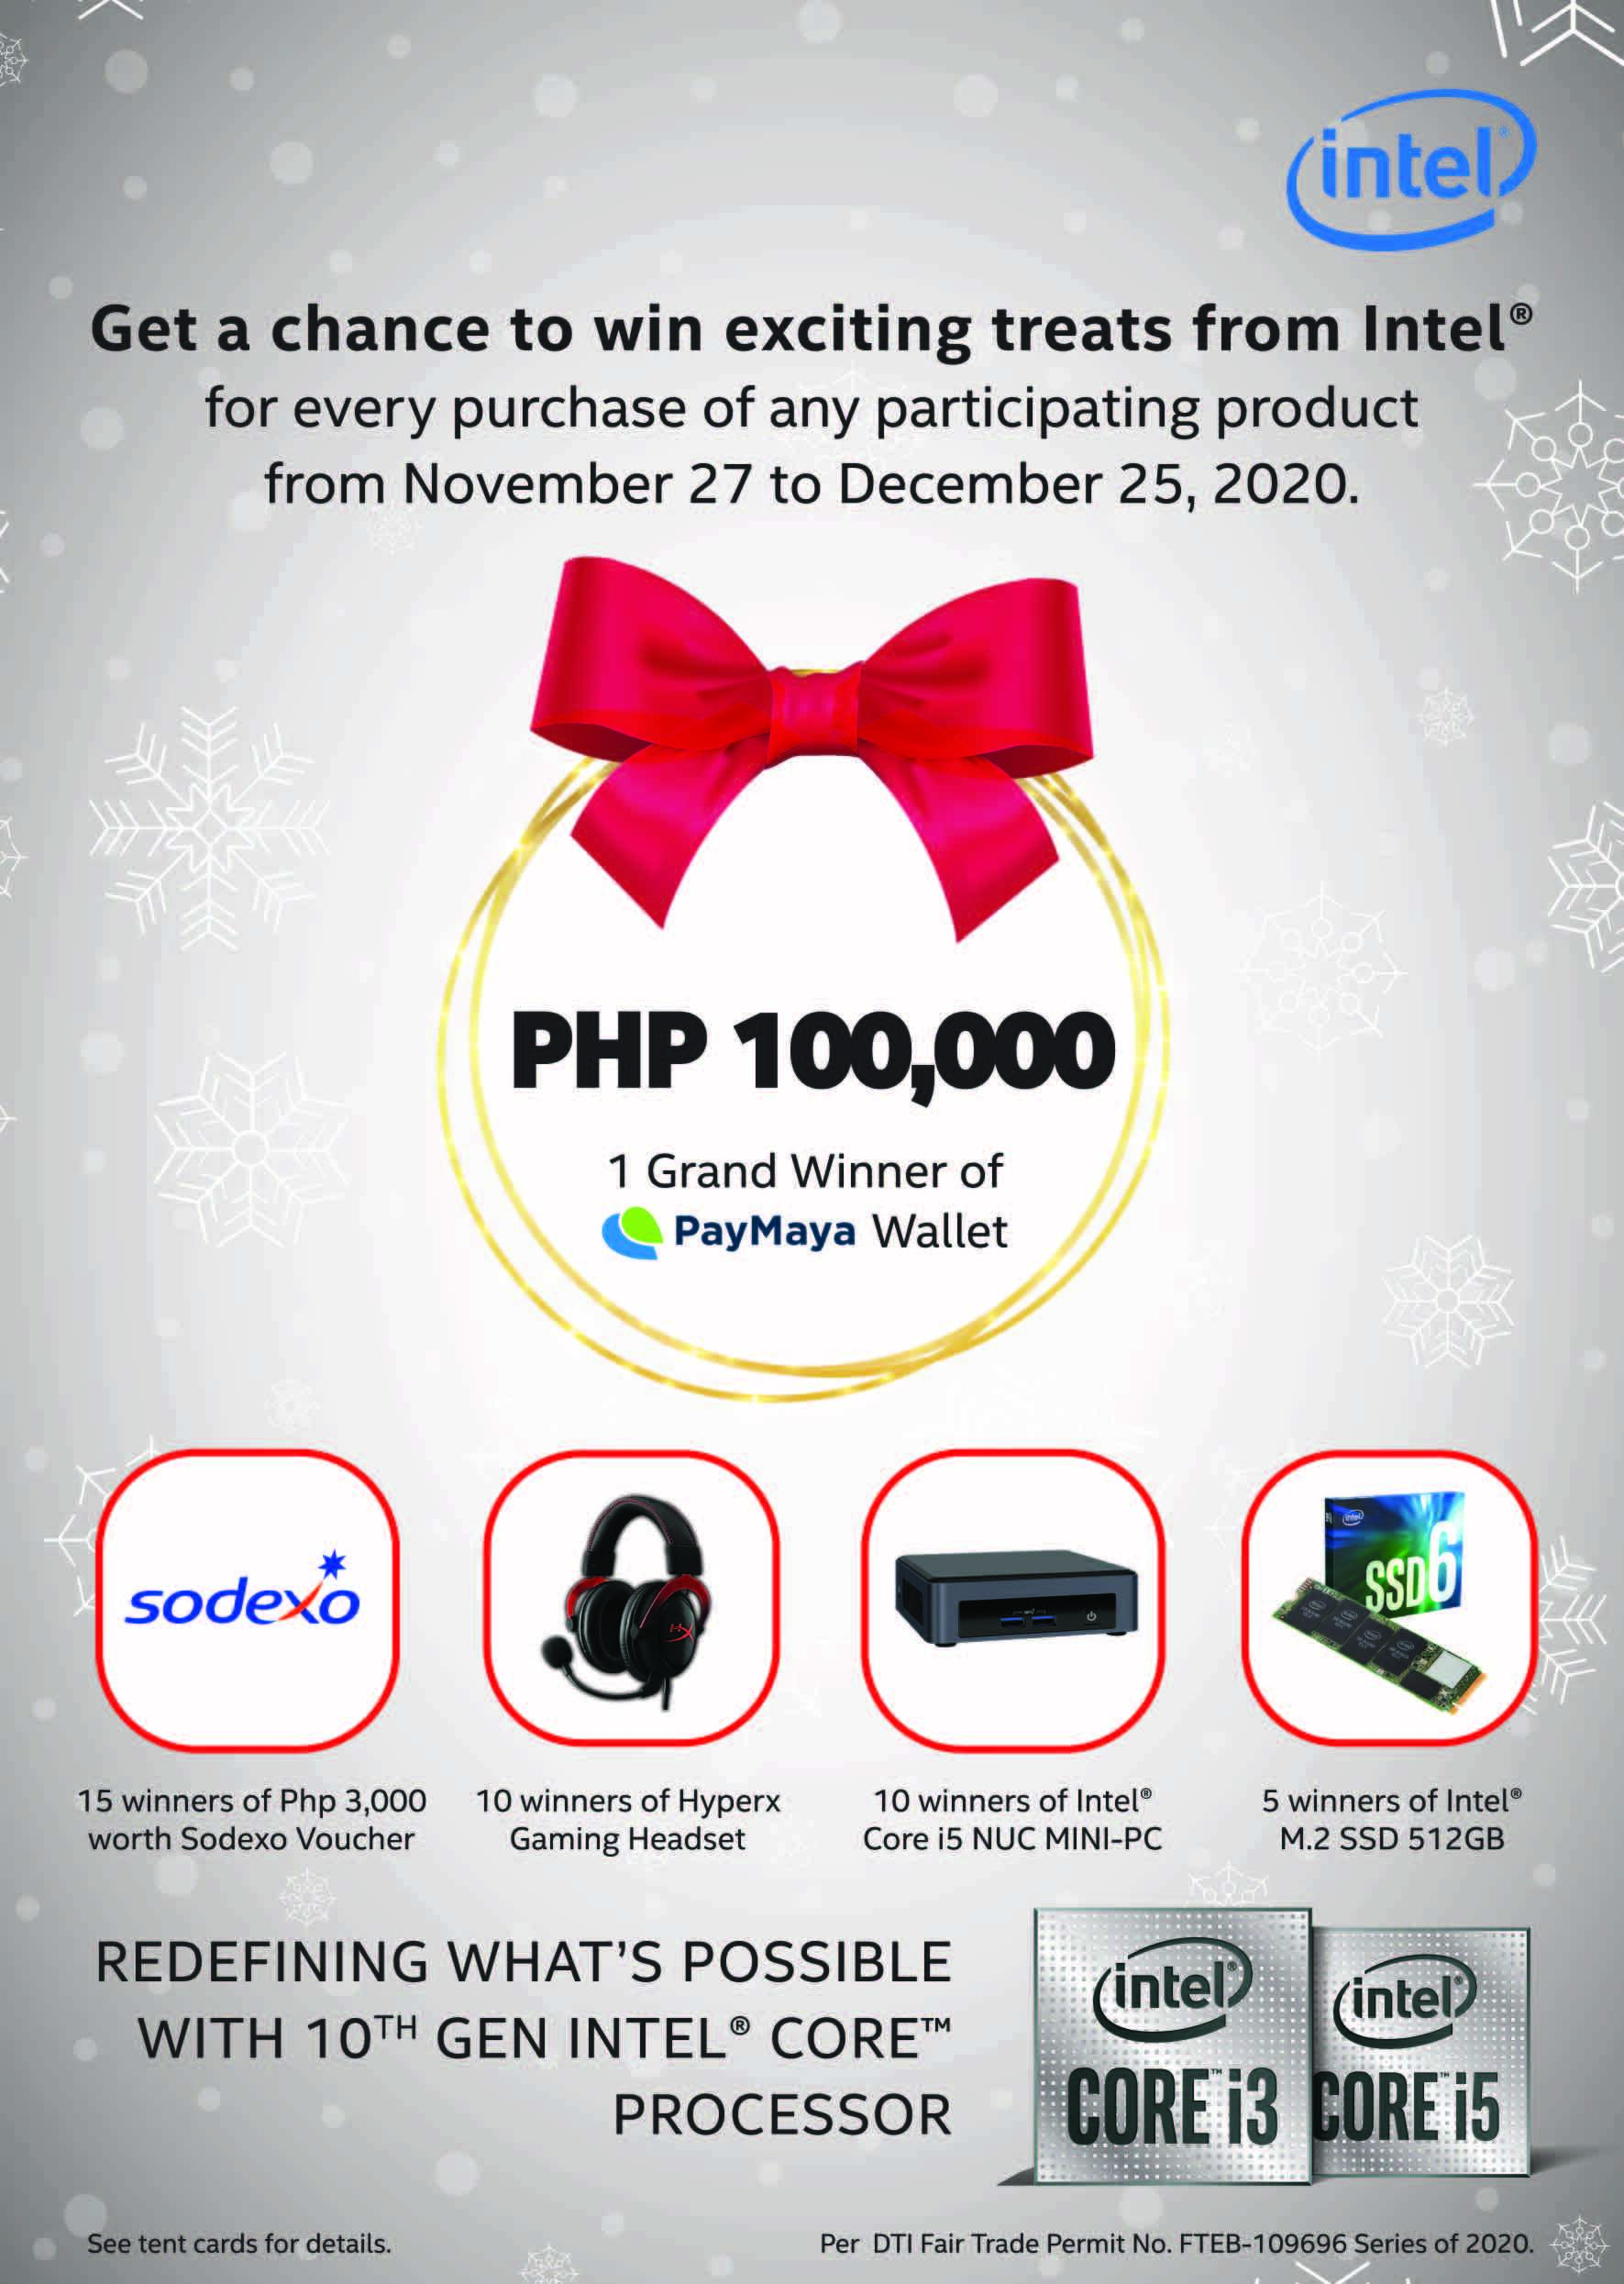 Win as much as P100,000 from Intel promo